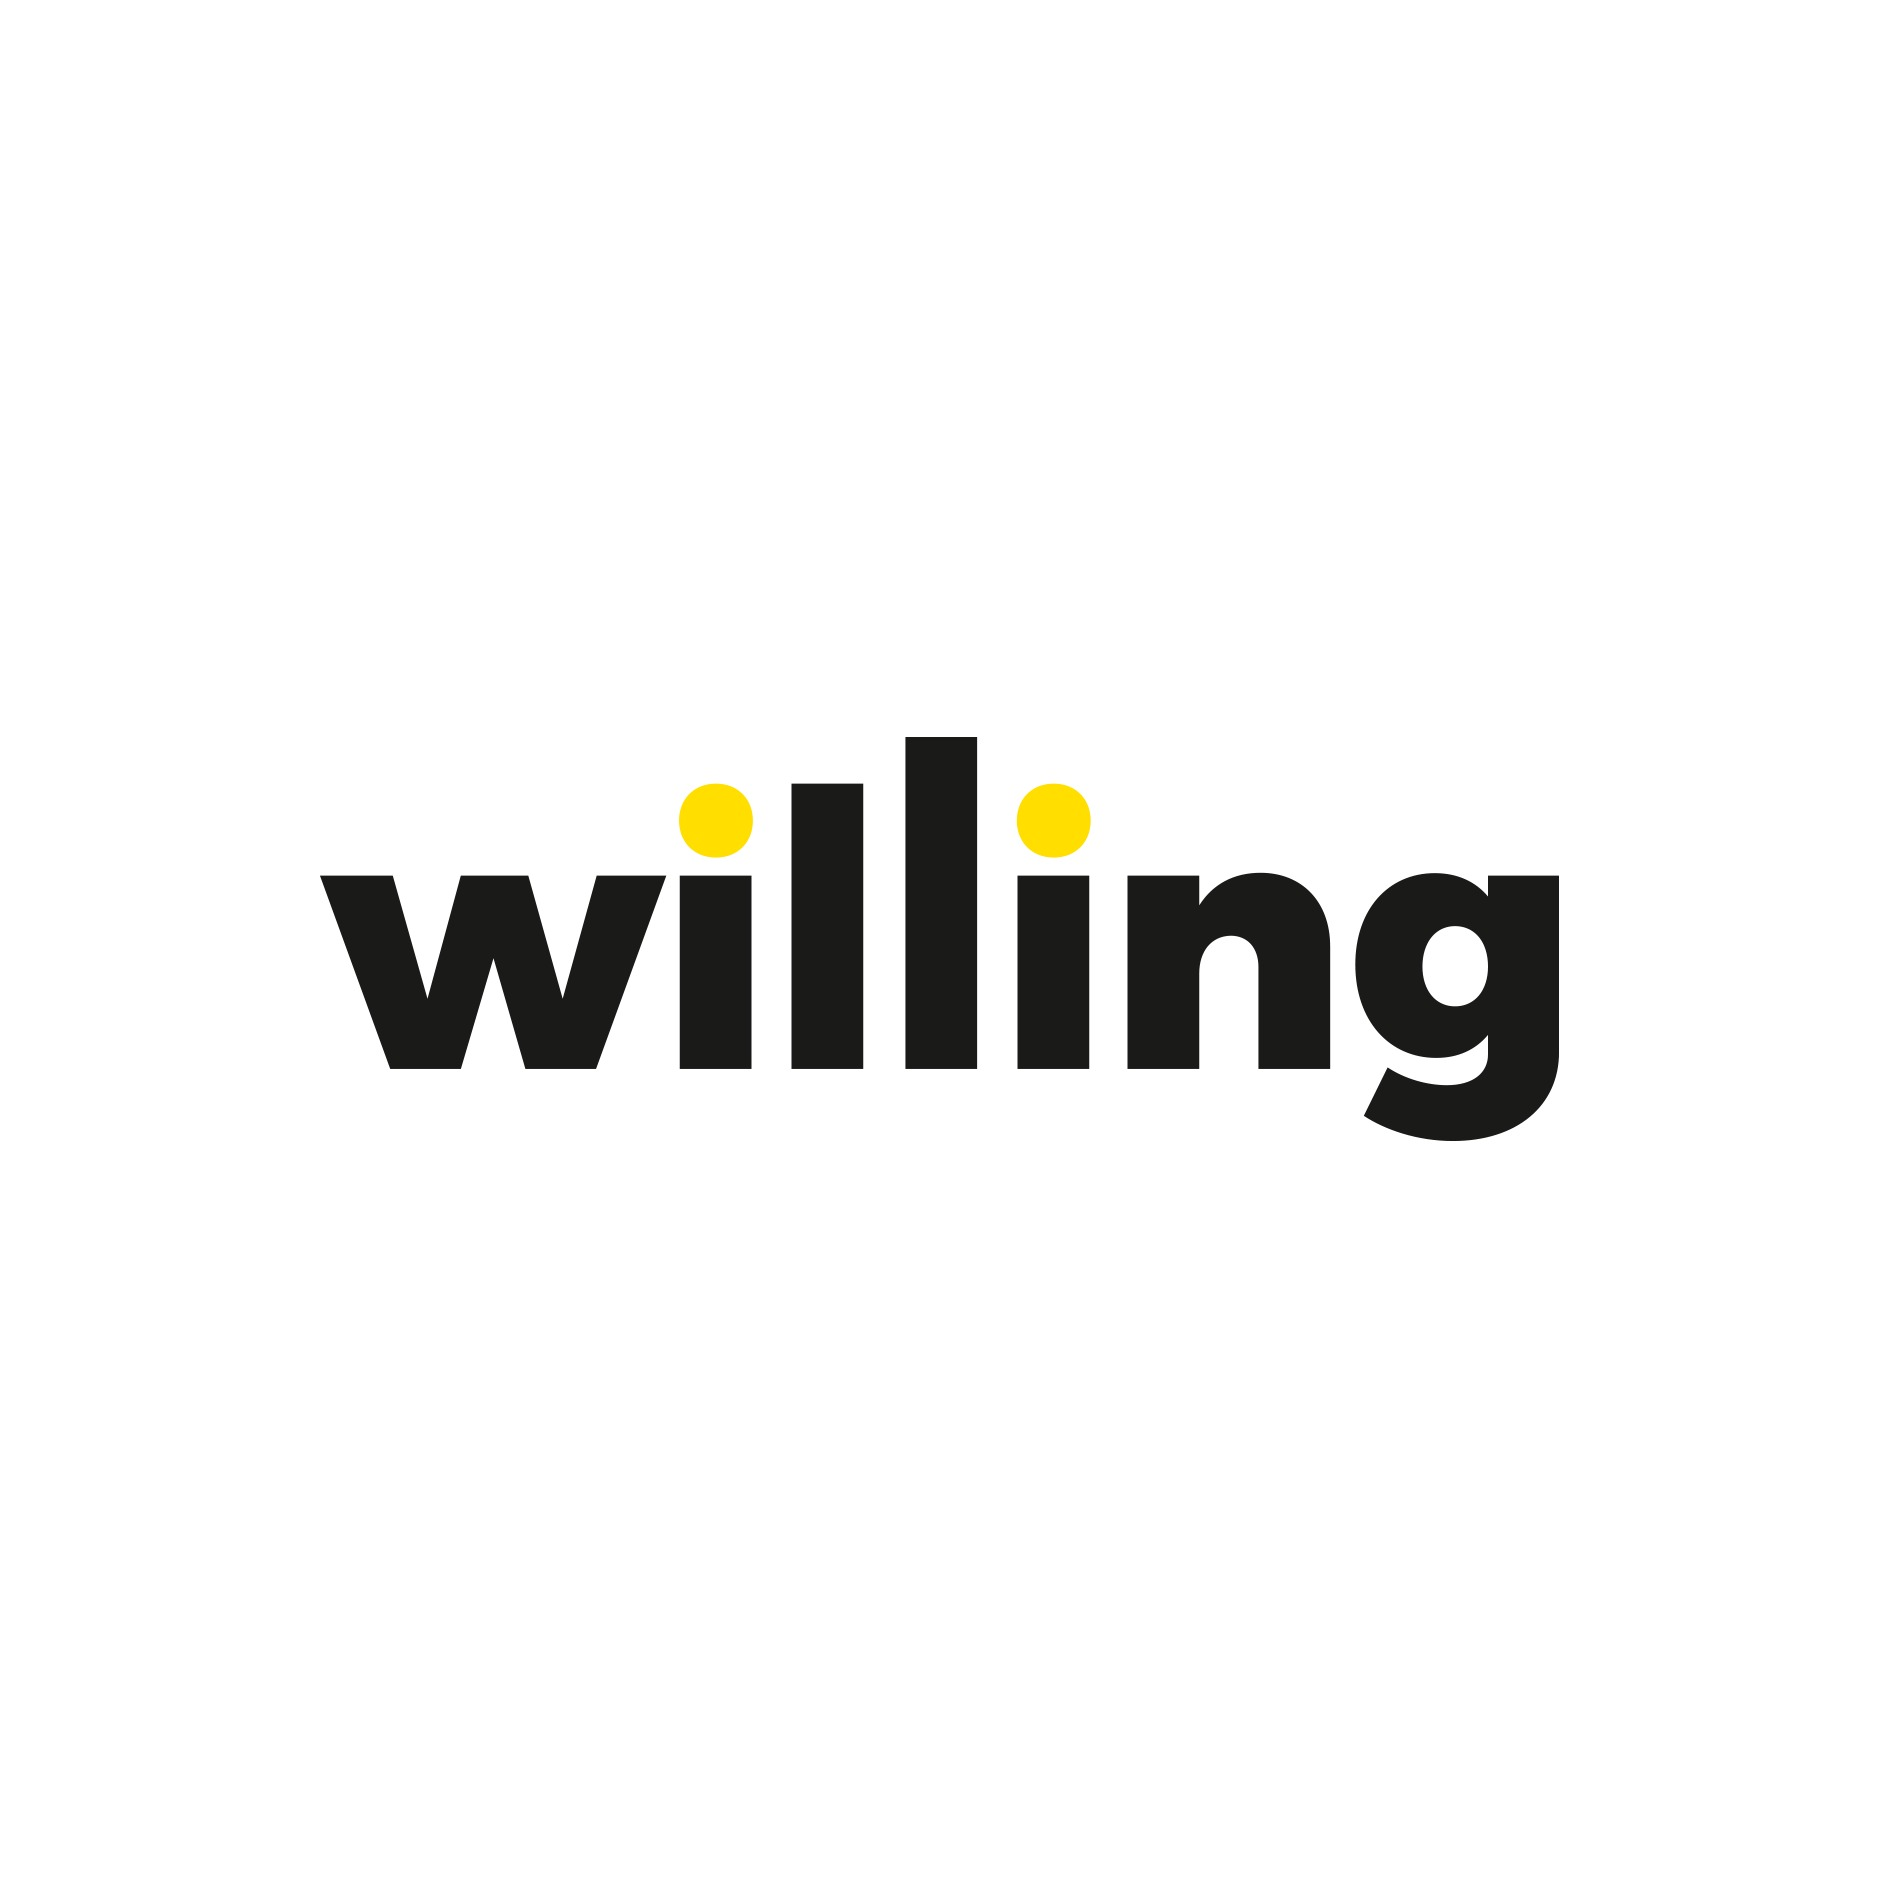 the Willing logo.